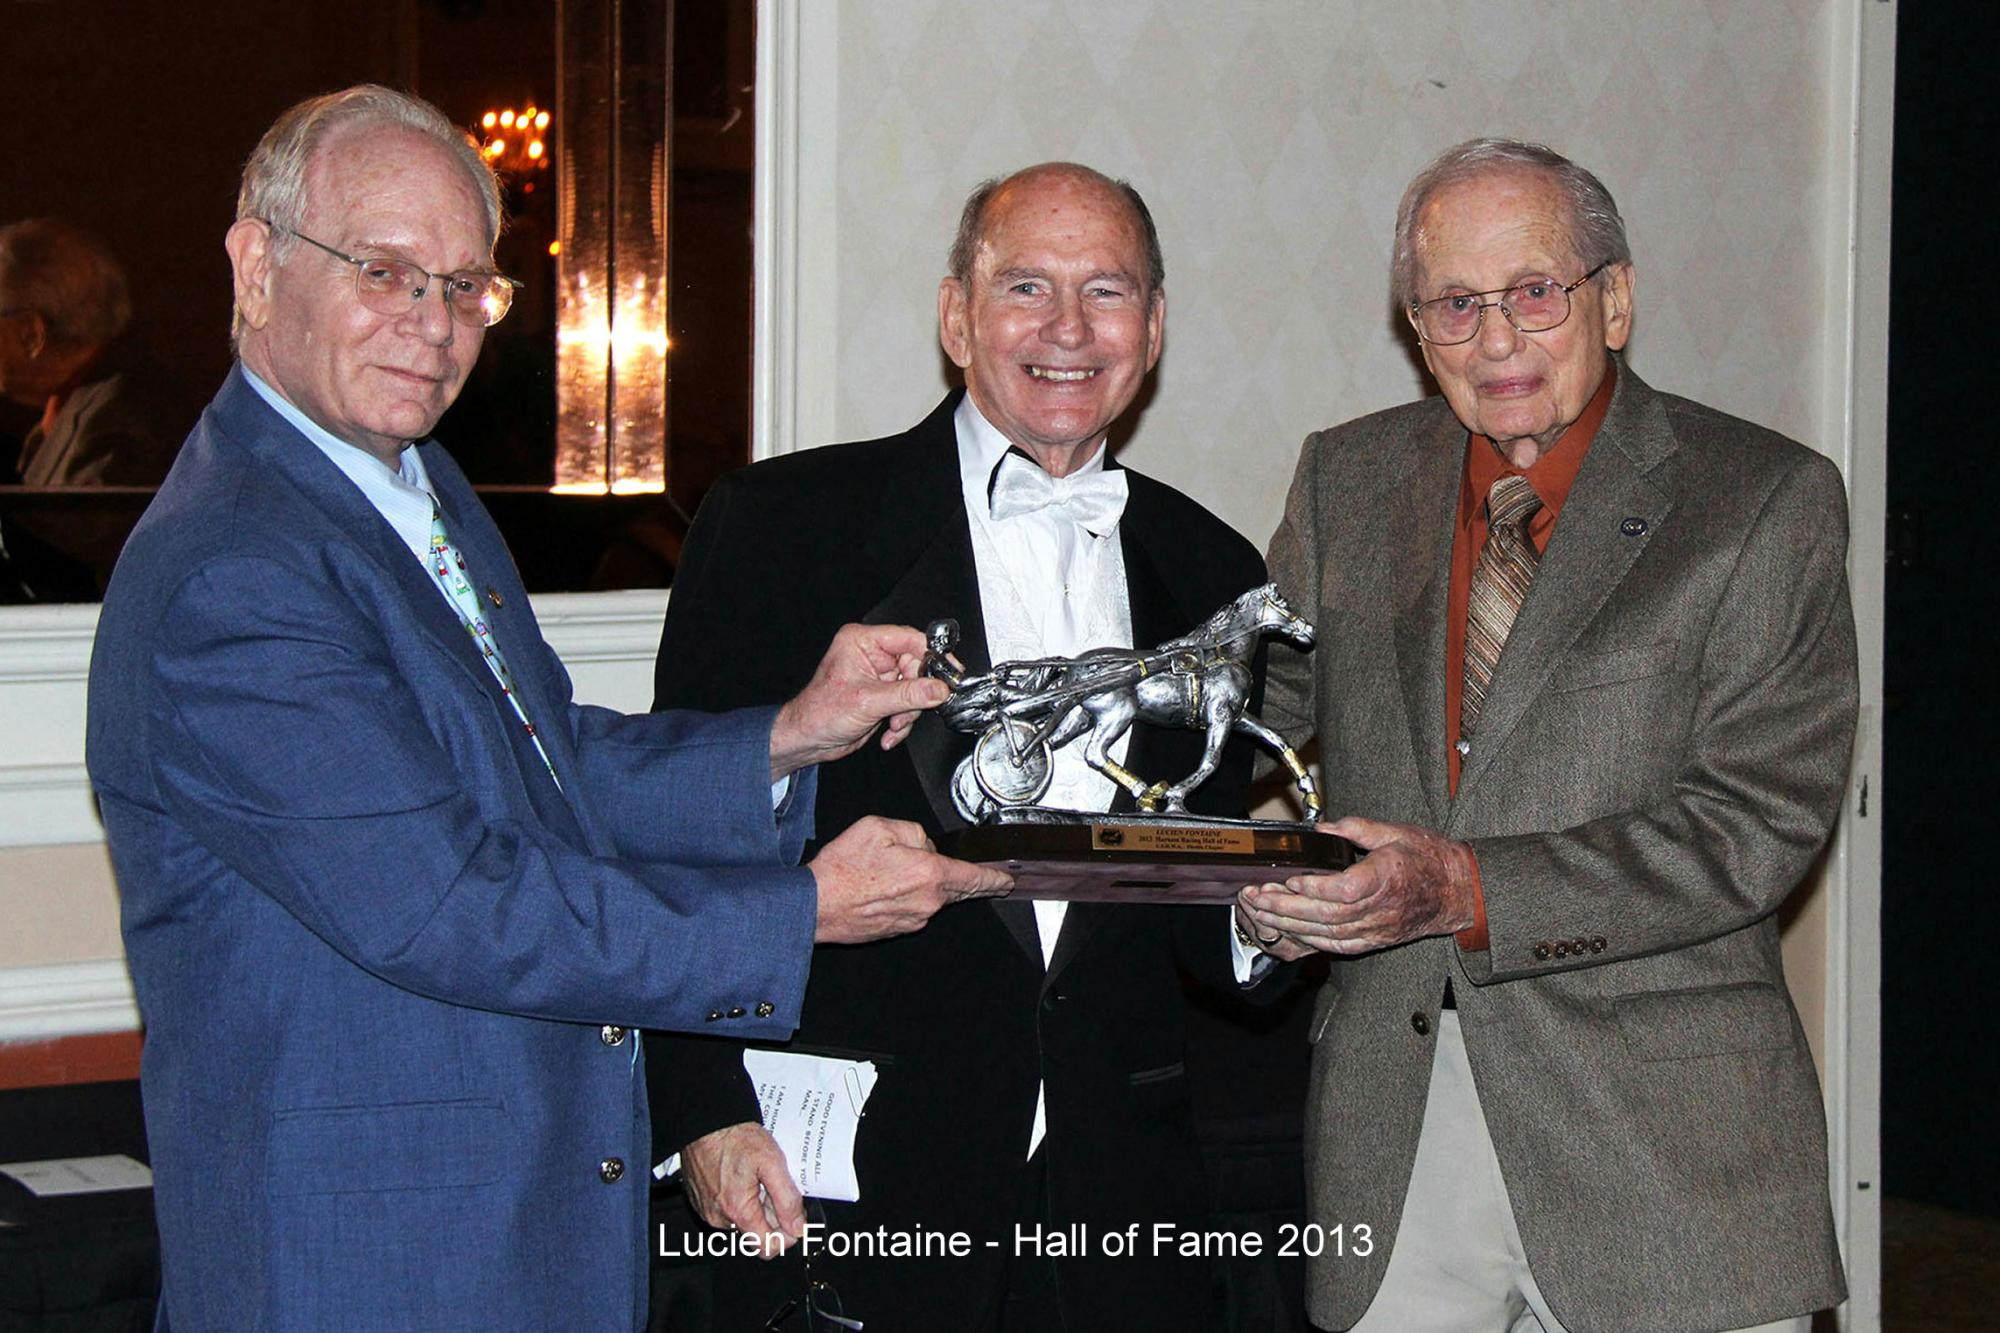 Lucien_Fontaine_Hall_of_Fame_2013_-_Banquet_Pics_093_sw_final.jpg